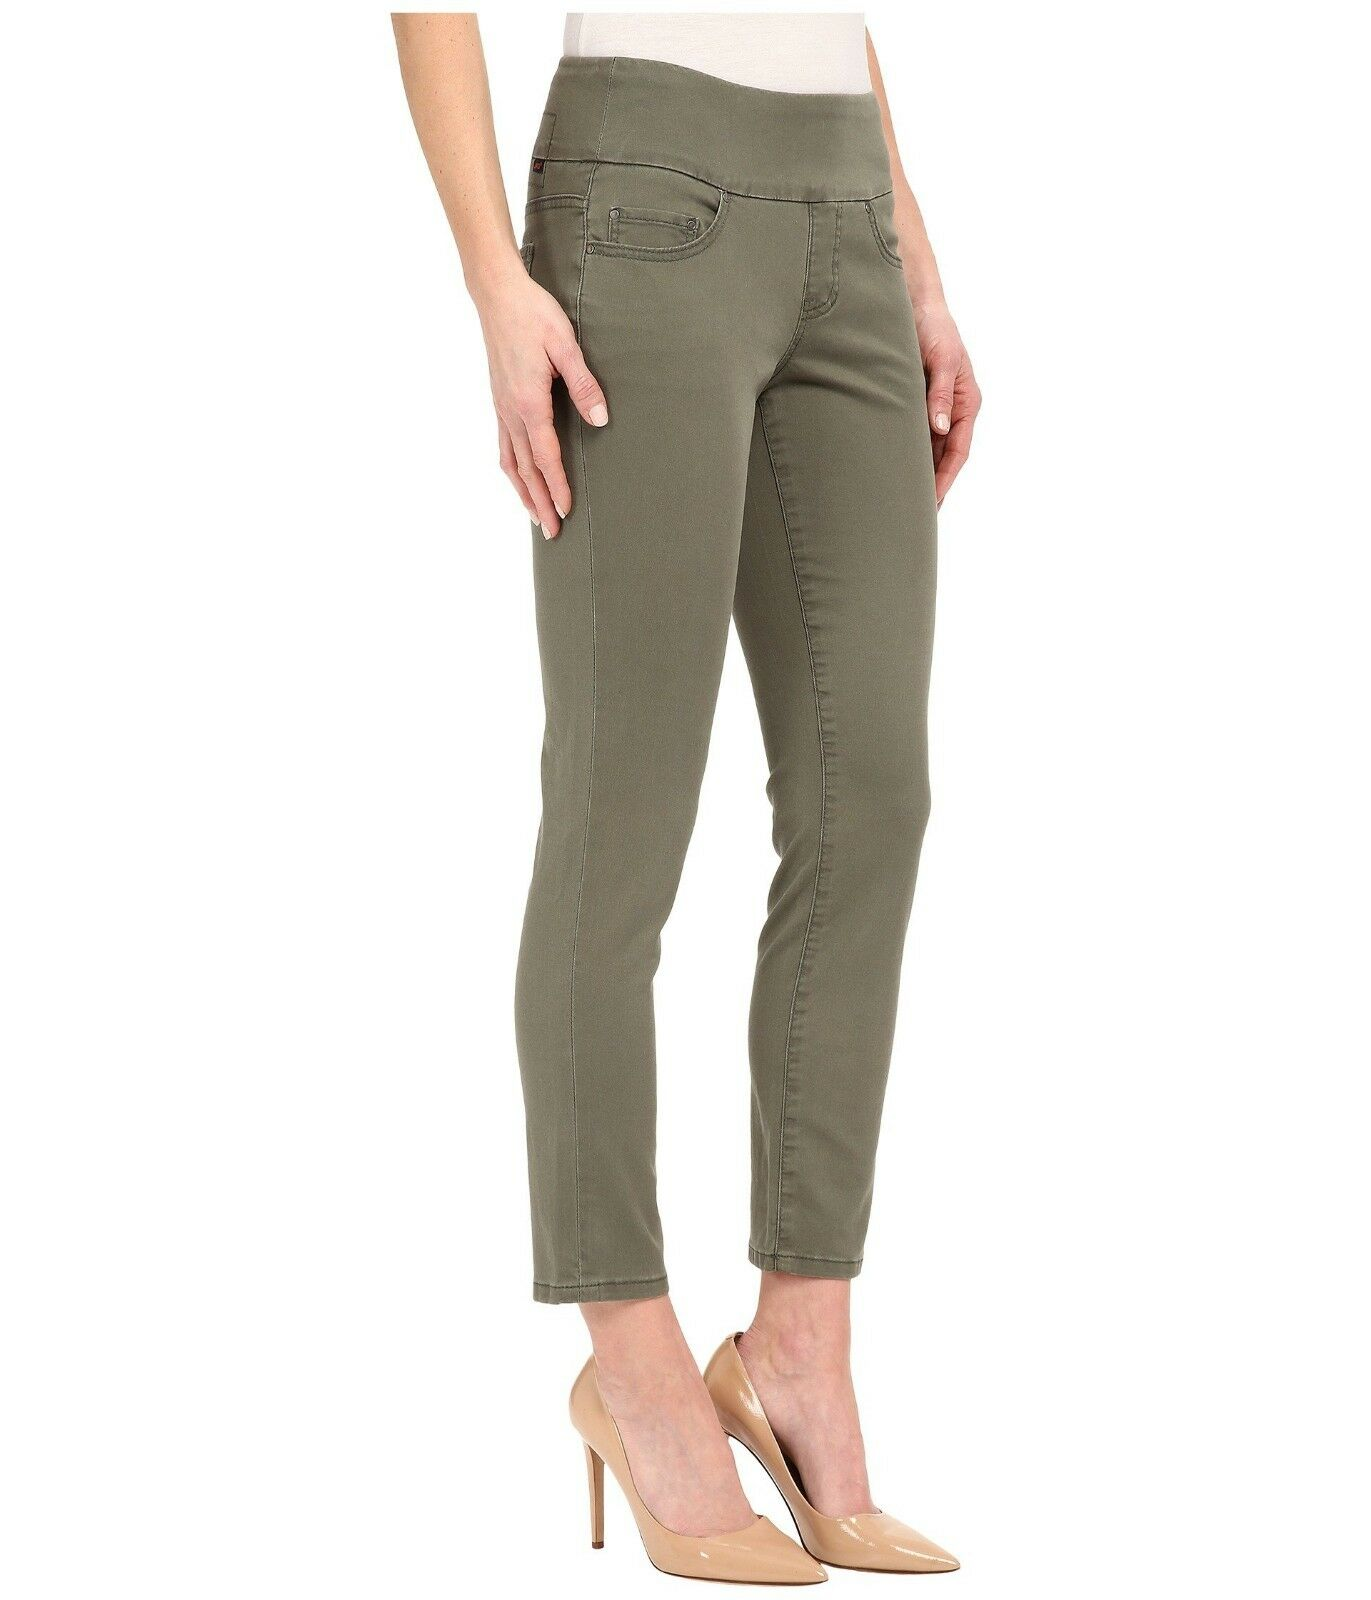 Jag Jeans Amelia Slim Ankle Pull on Pant Divine TWILL In Jungle Palm green NWT